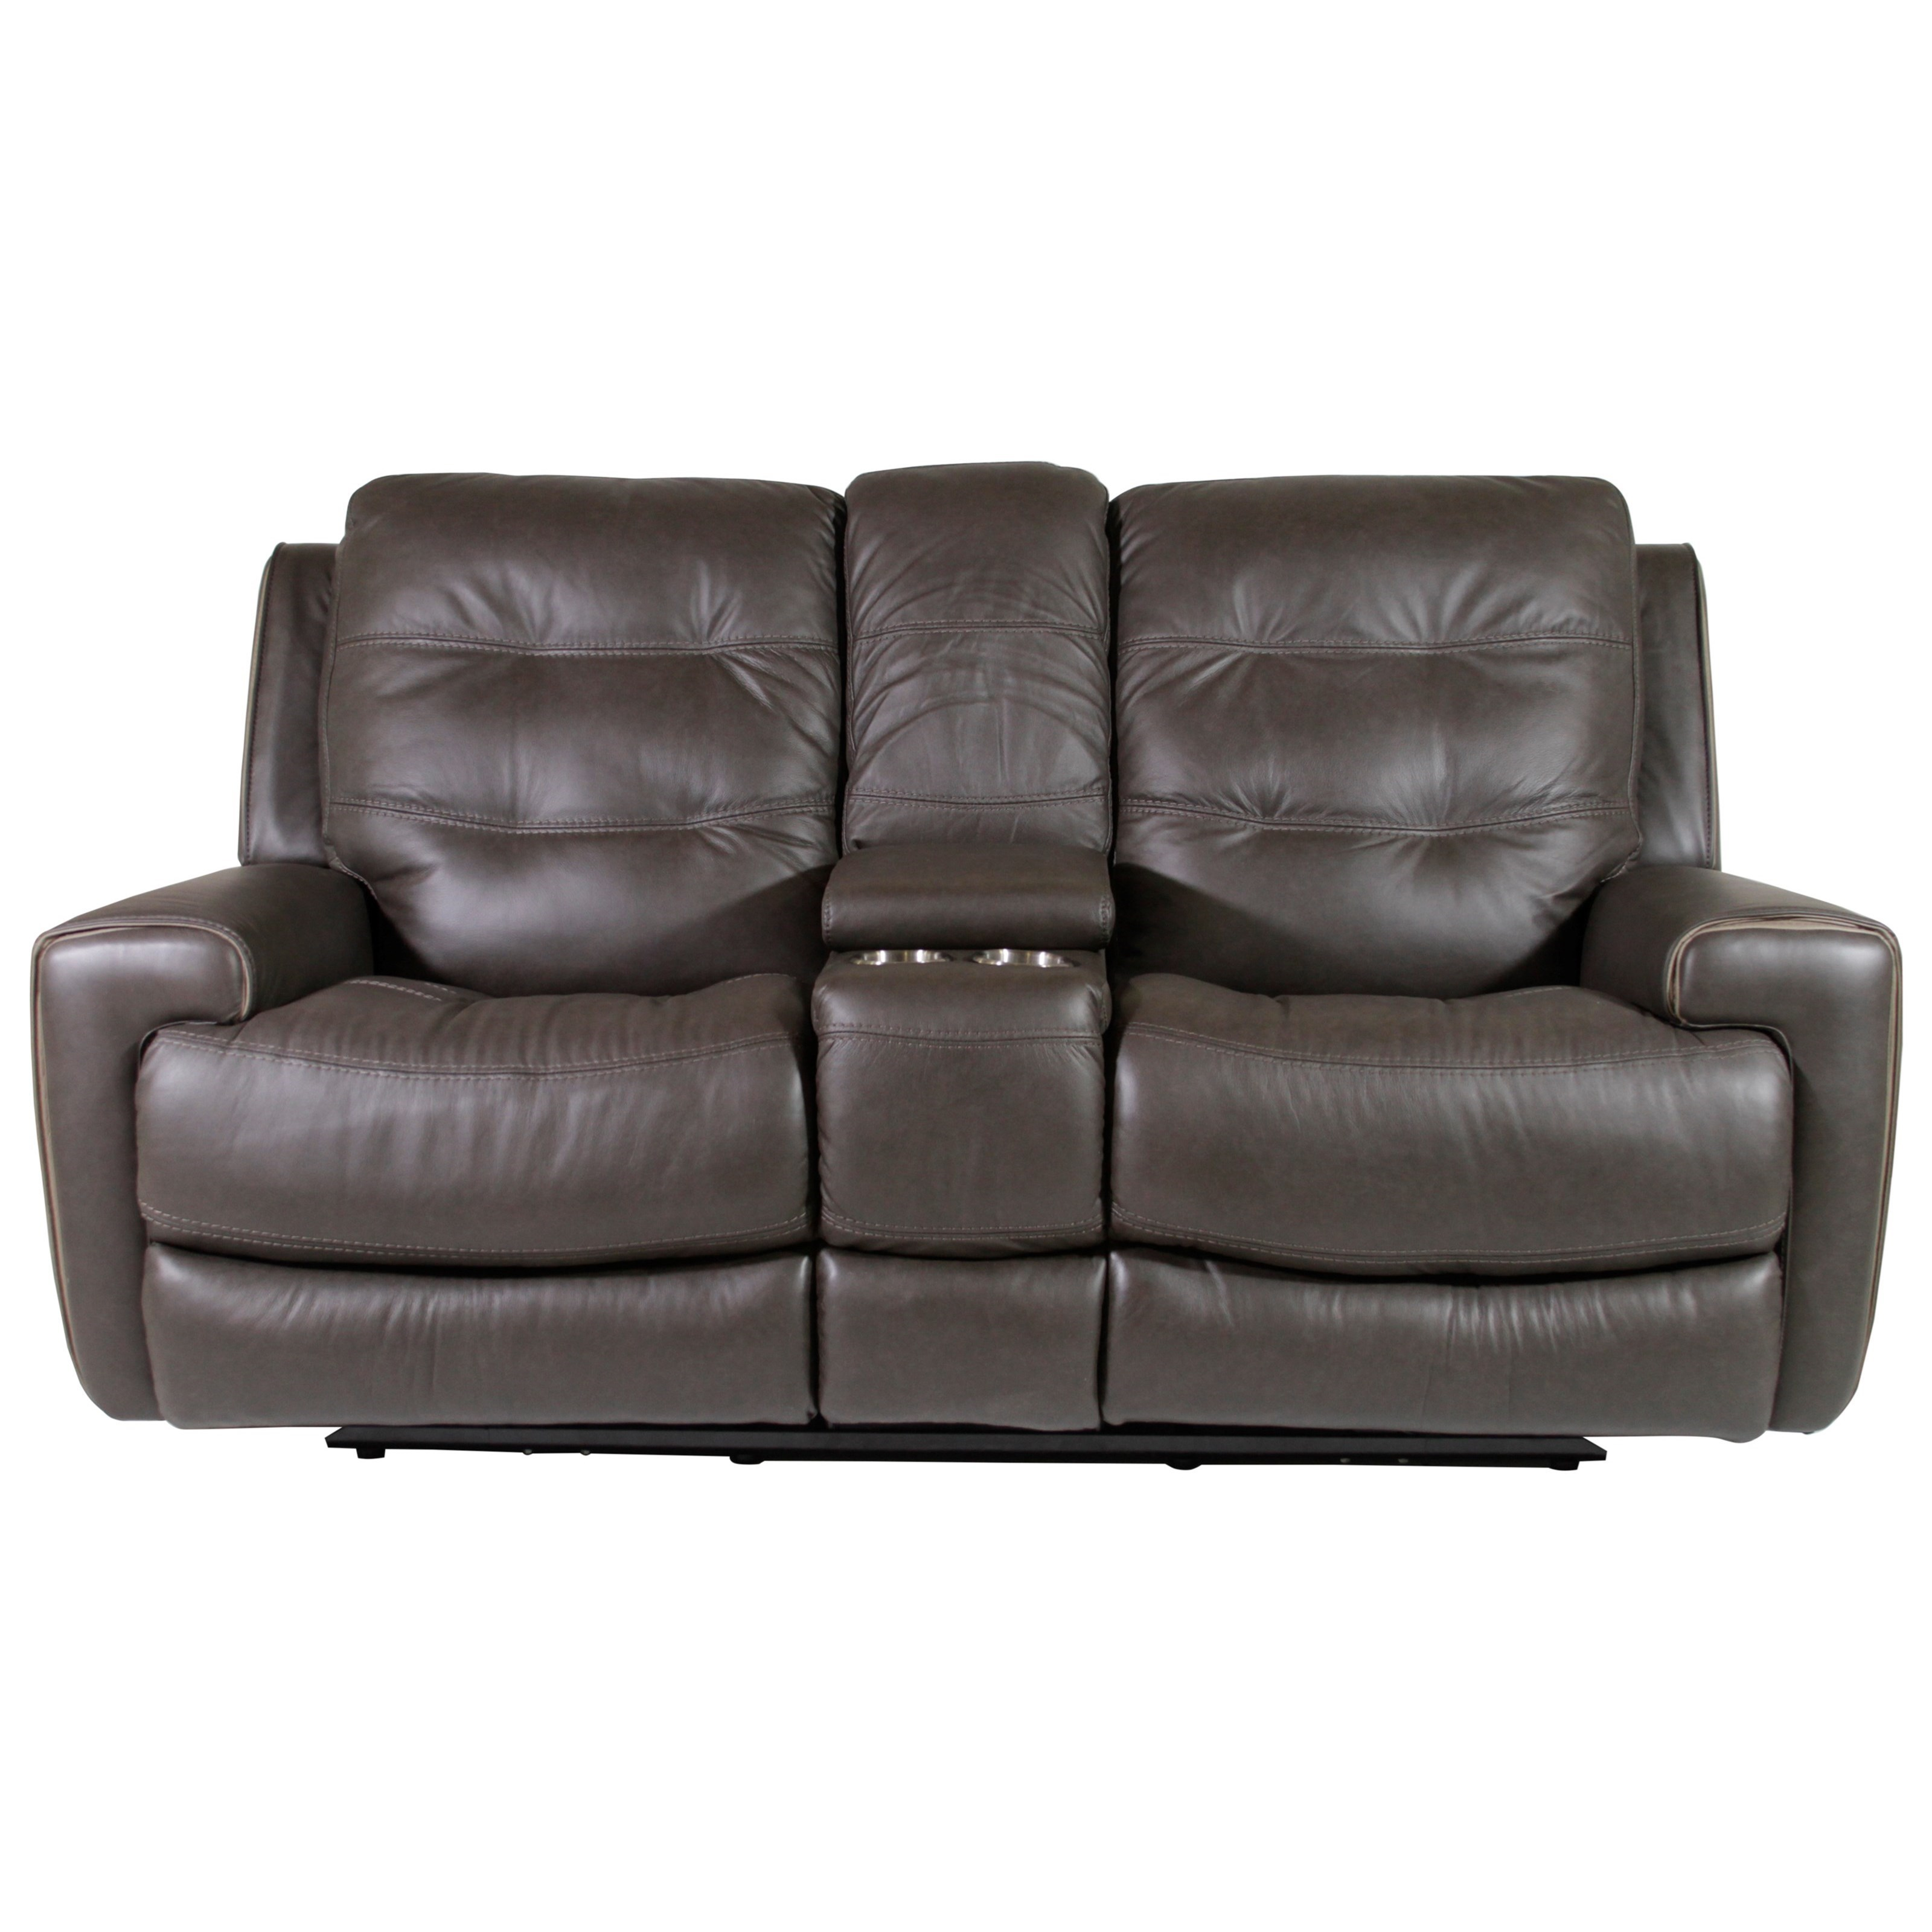 Flexsteel Sofas And Loveseats For Living Room